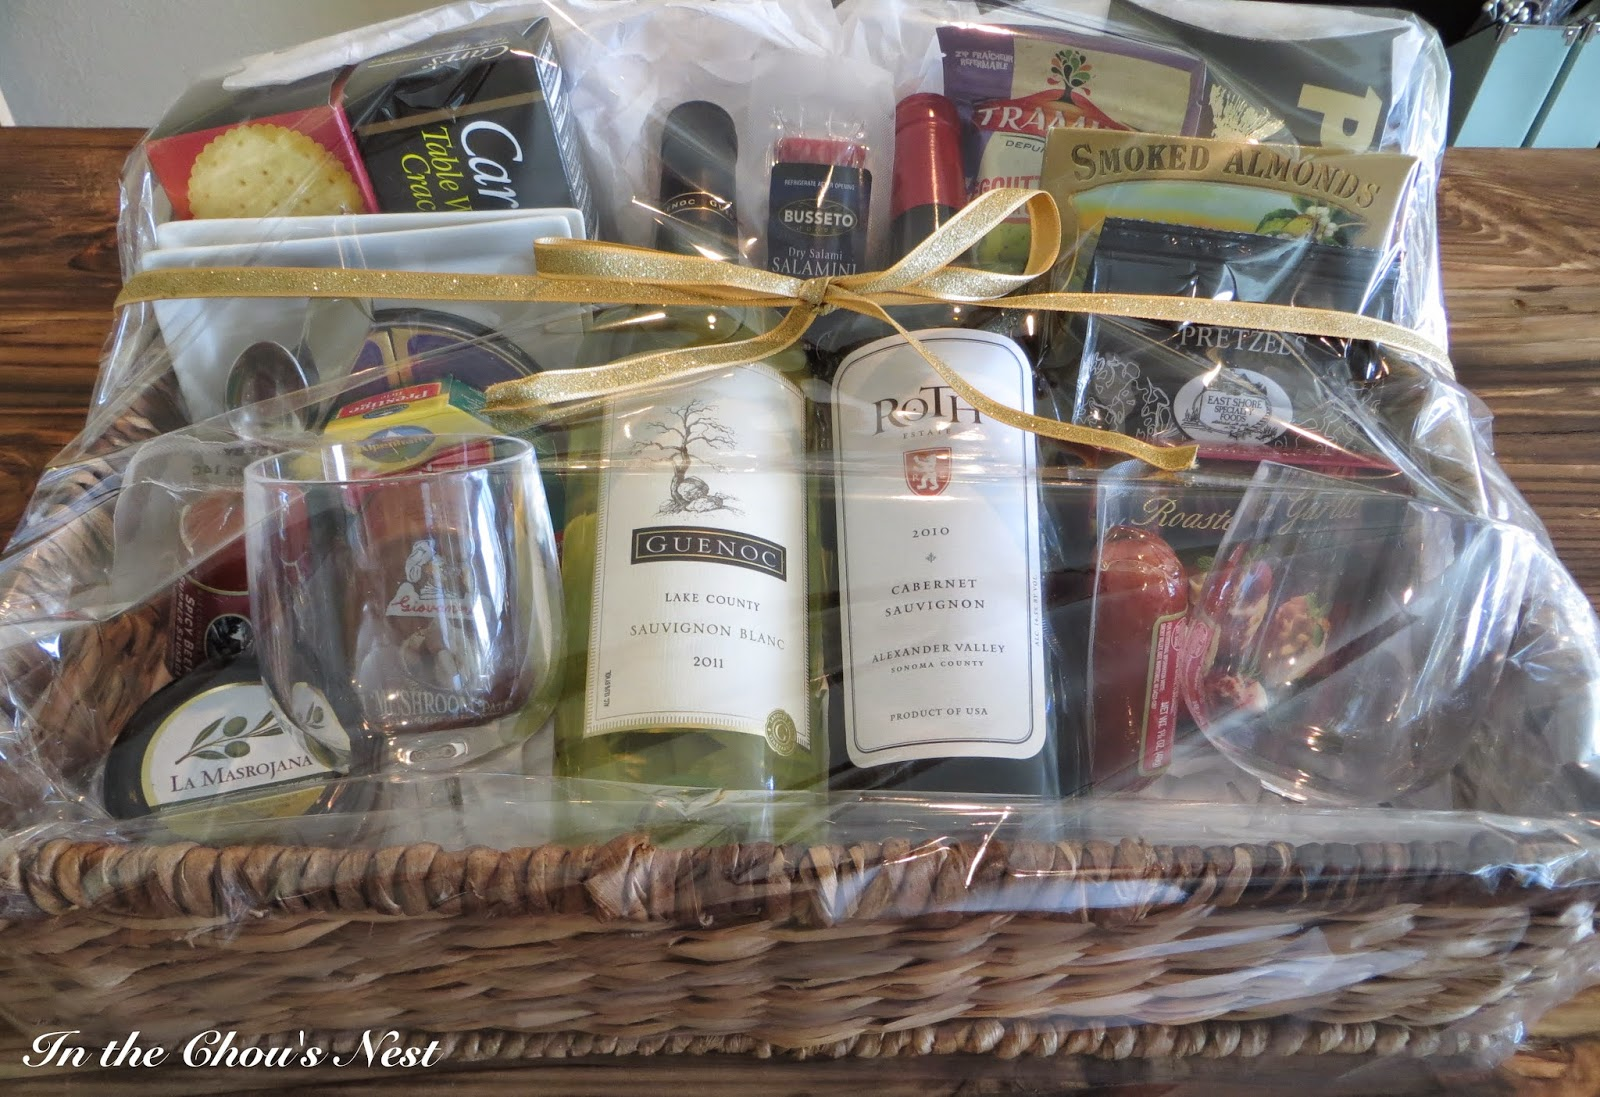 In the chous nest april 2014 here is what the gift basket looked like all put together solutioingenieria Image collections